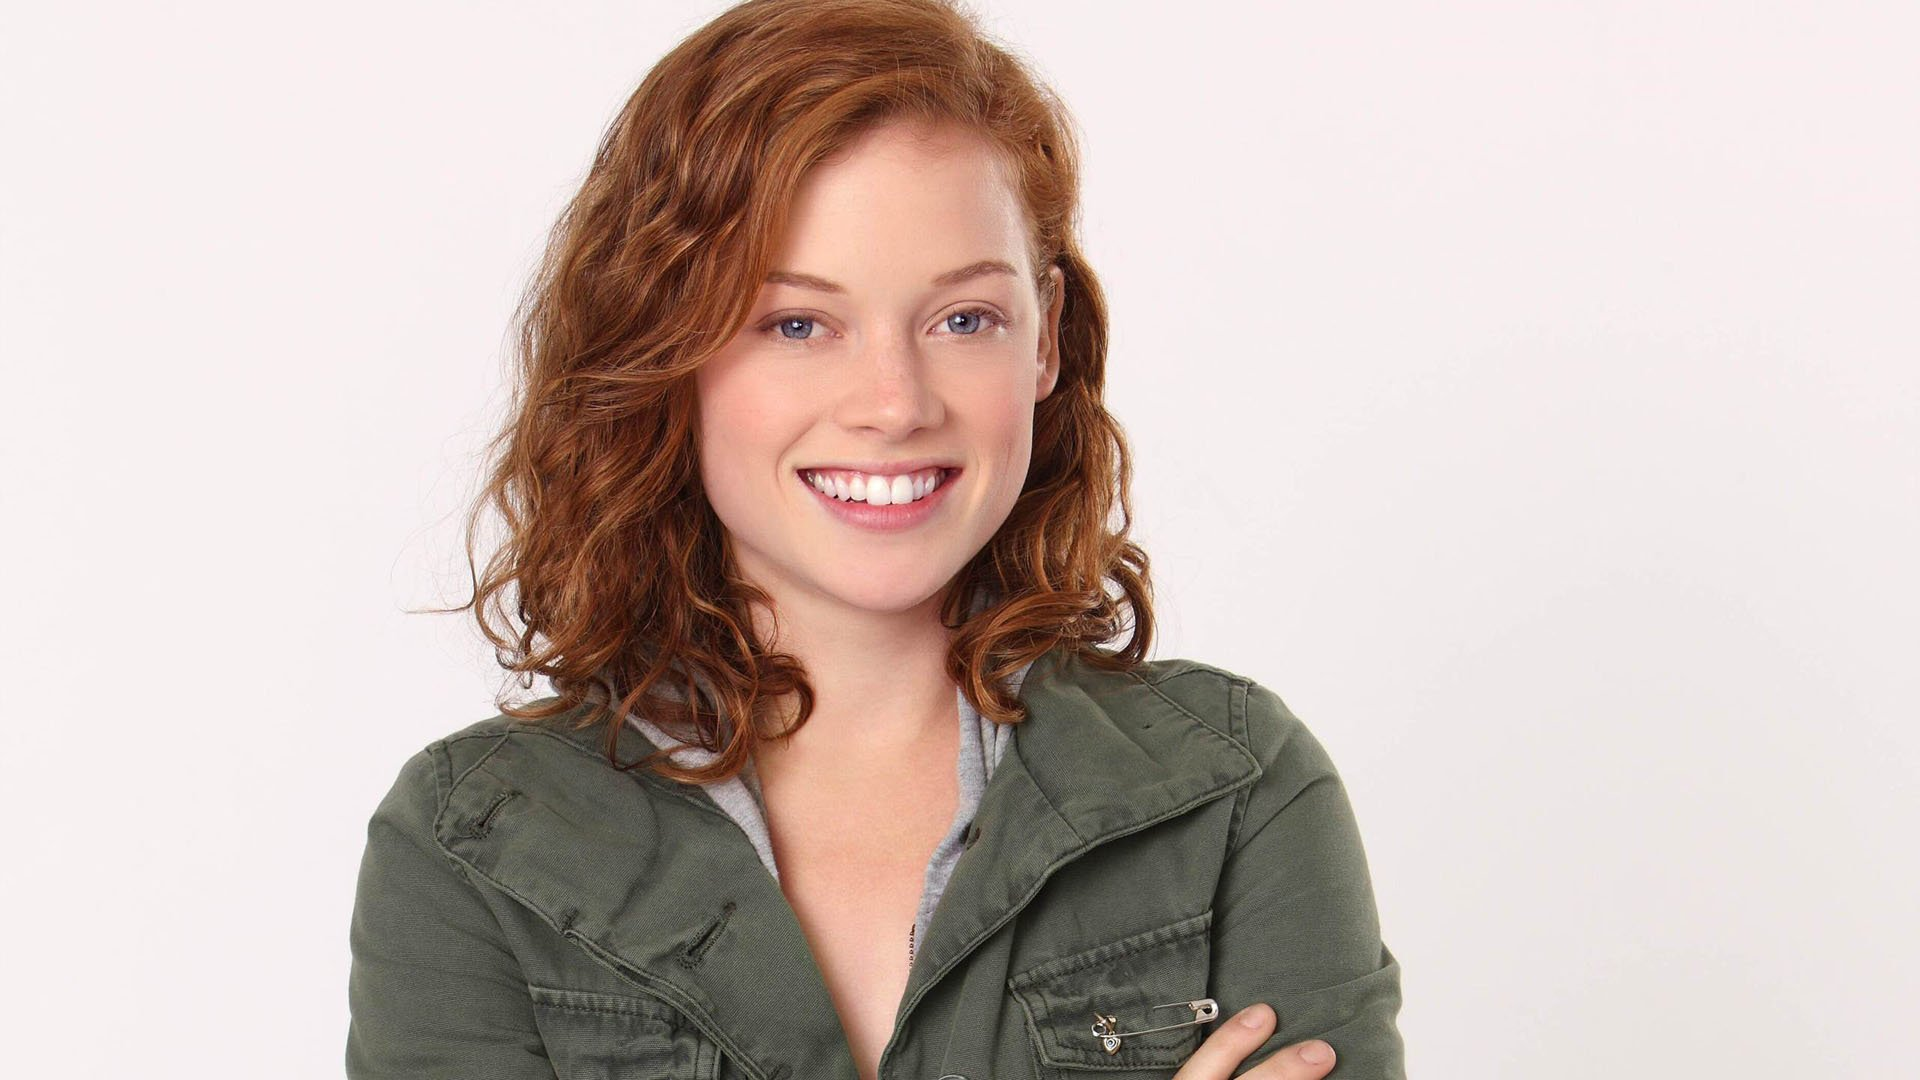 Jane Levy Hd Wallpaper Background Image 1920x1080 Id